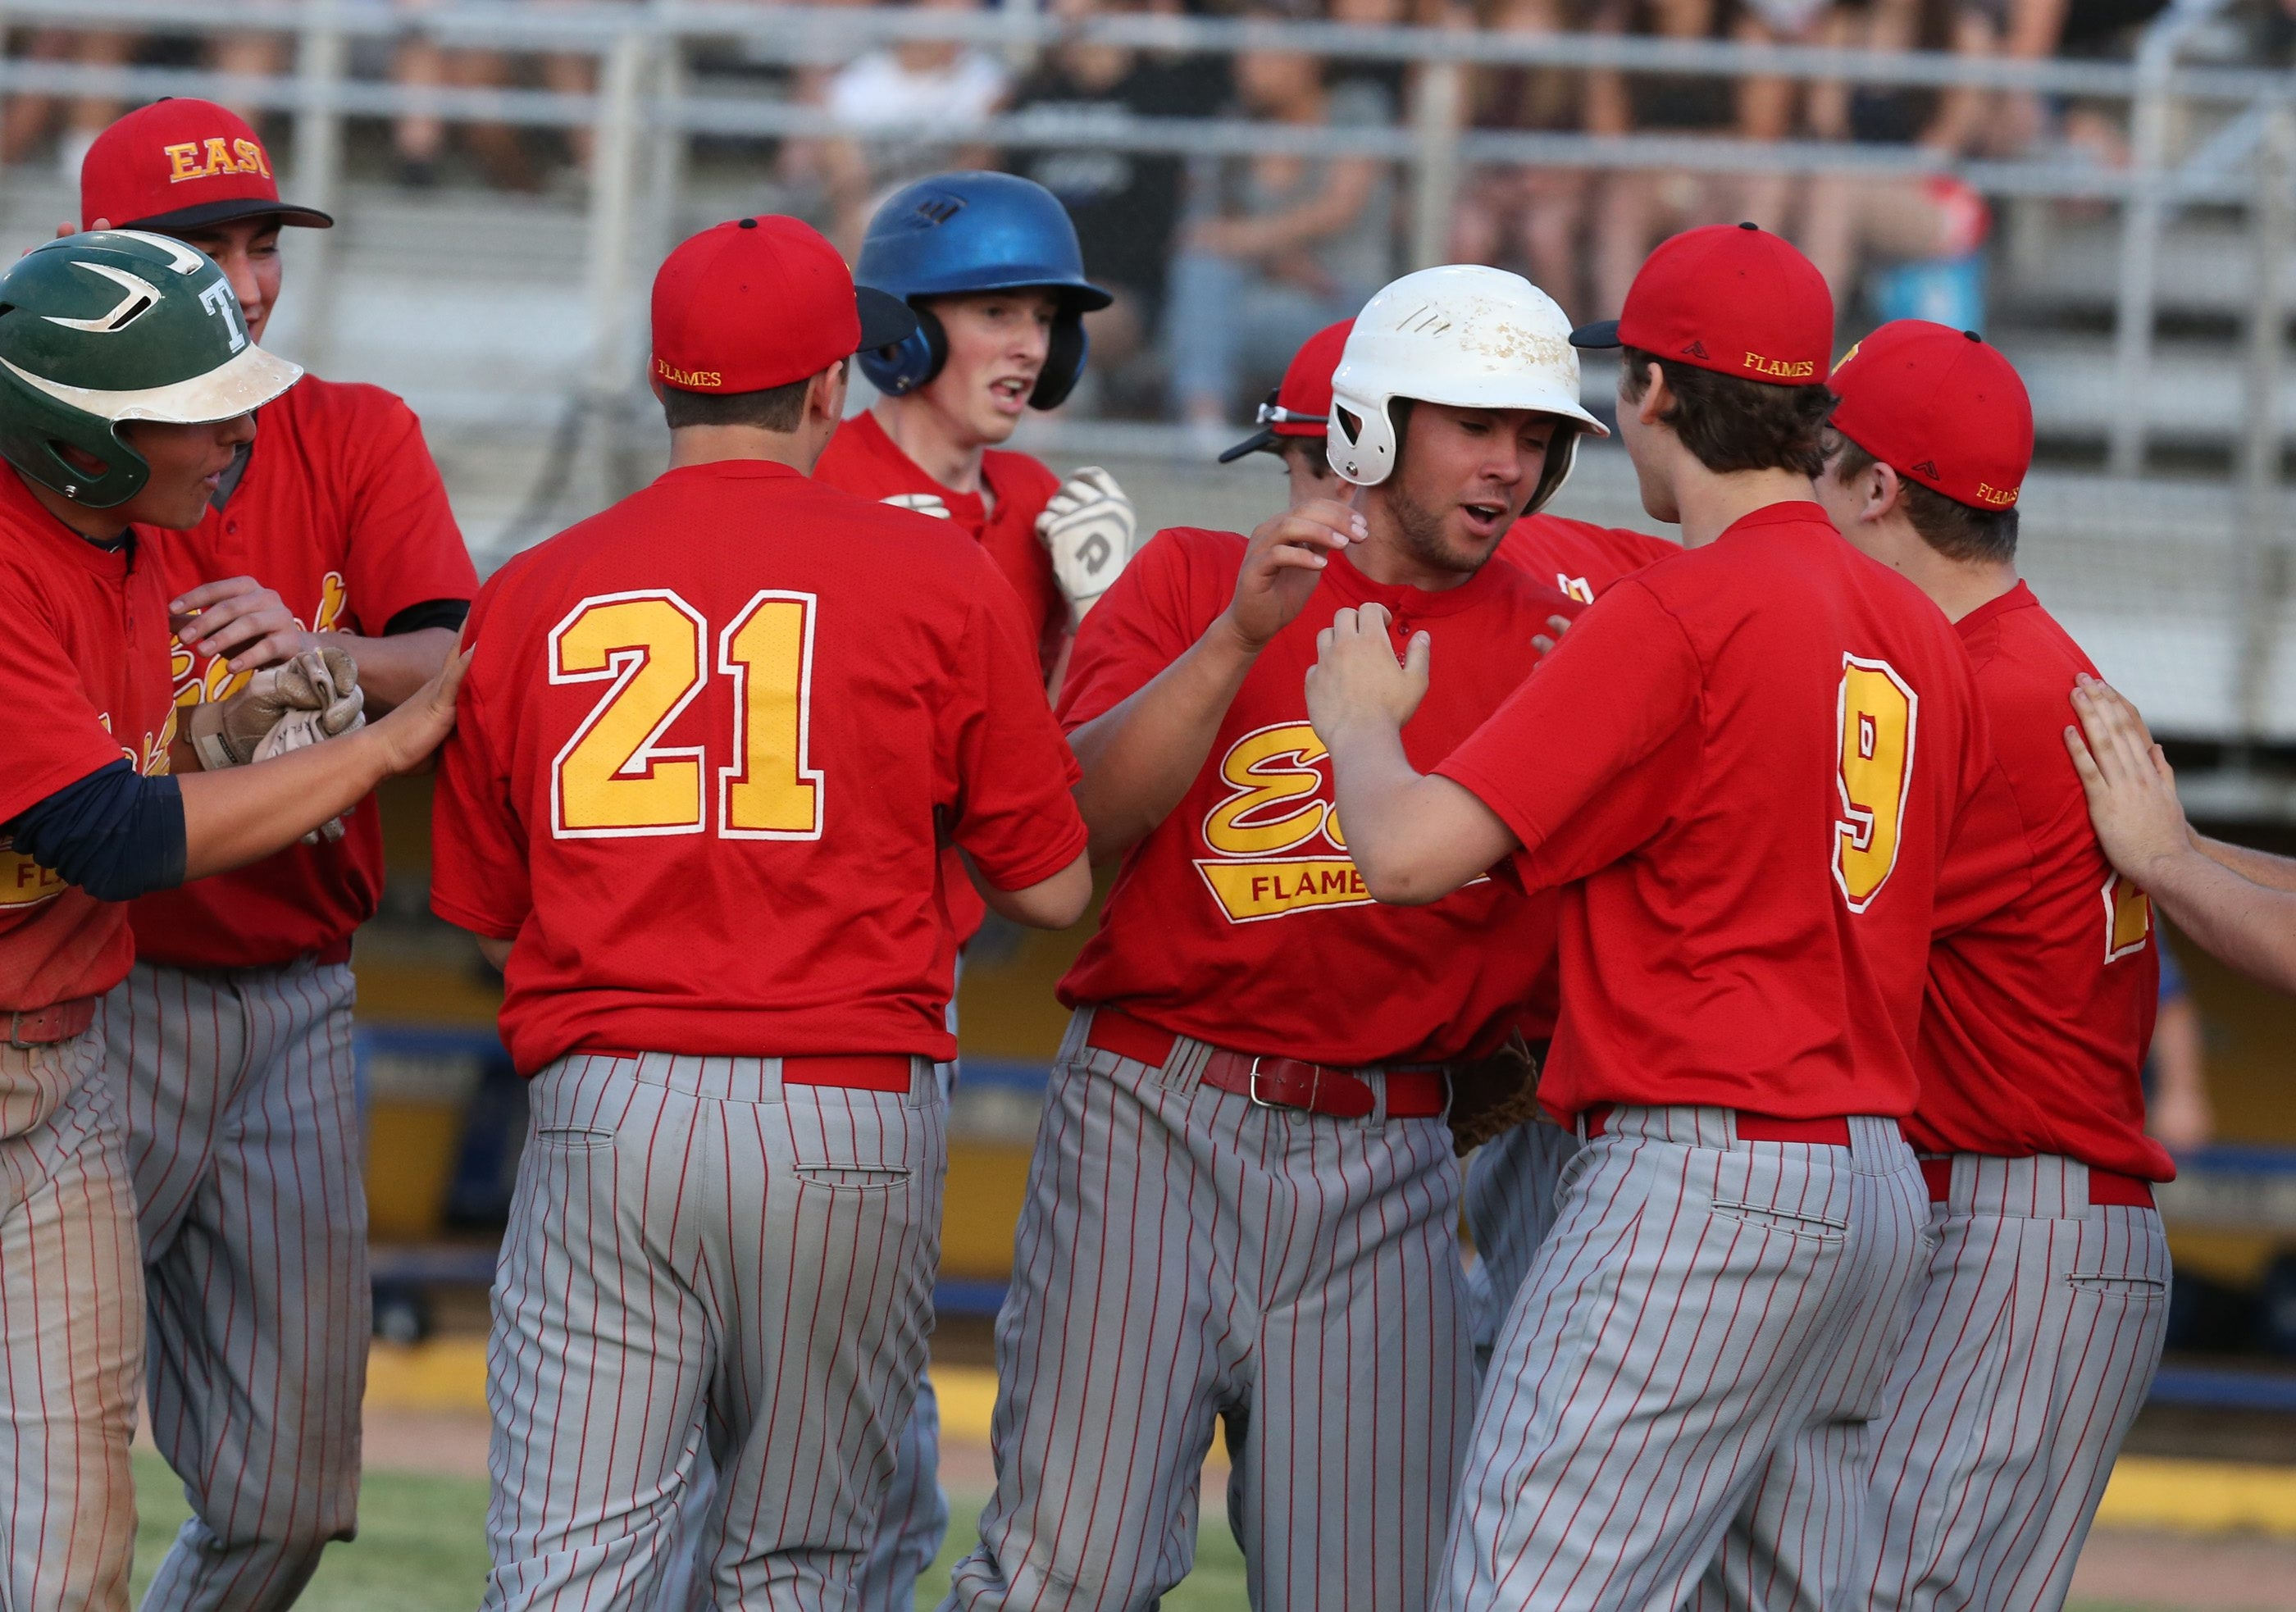 Williamsville East's Charlie Mack celebrates with his teammates after scoring in the second inning of a game with Grand Island.